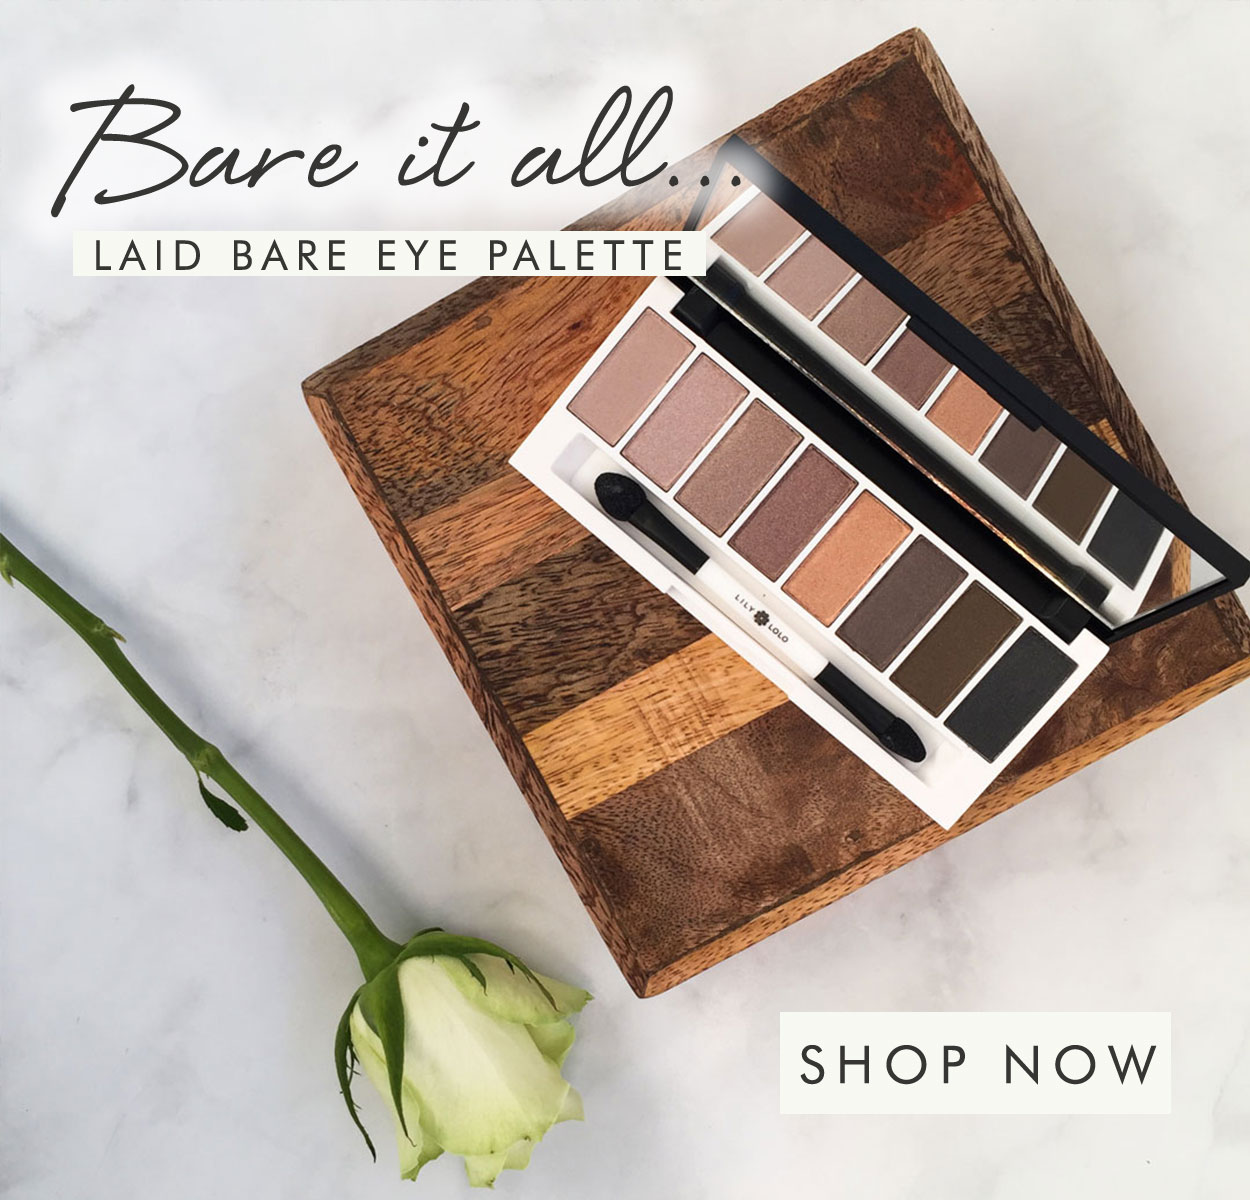 Lily Lolo Eye Palettes Laid Bare